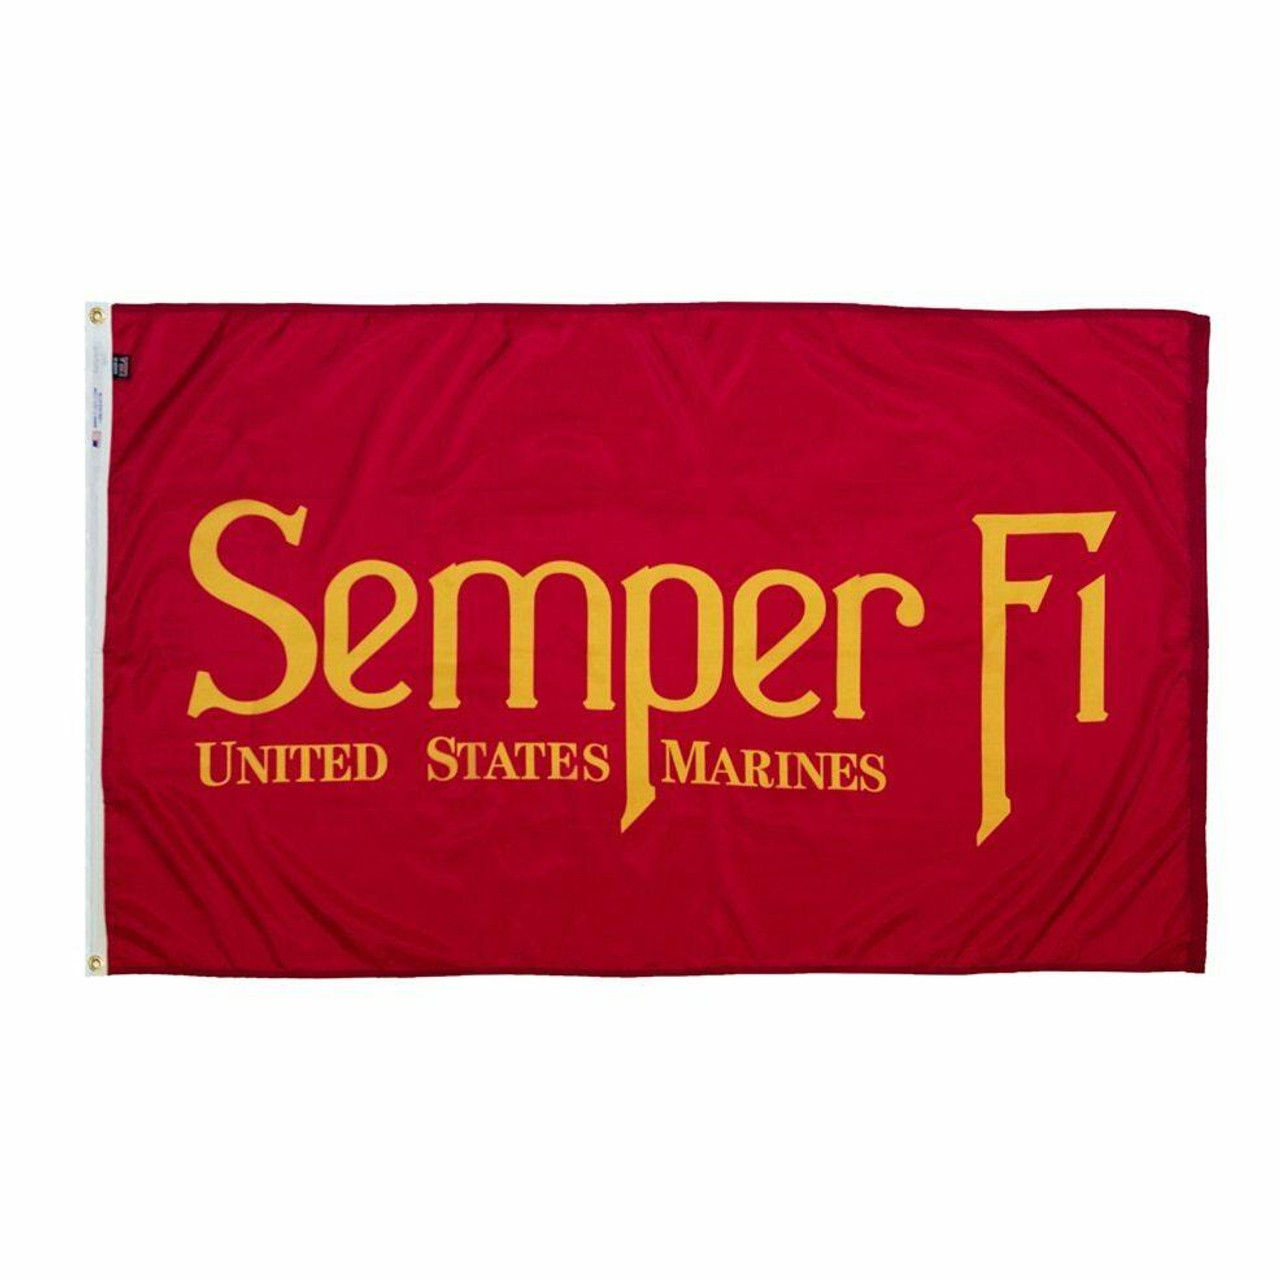 """A 3 foot by 5 foot dark red flag with """"Semper Fi"""" written across it golden yellow lettering. The flag is finished with a canvas header and brass grommets to hoist the flag on to a flagpole."""